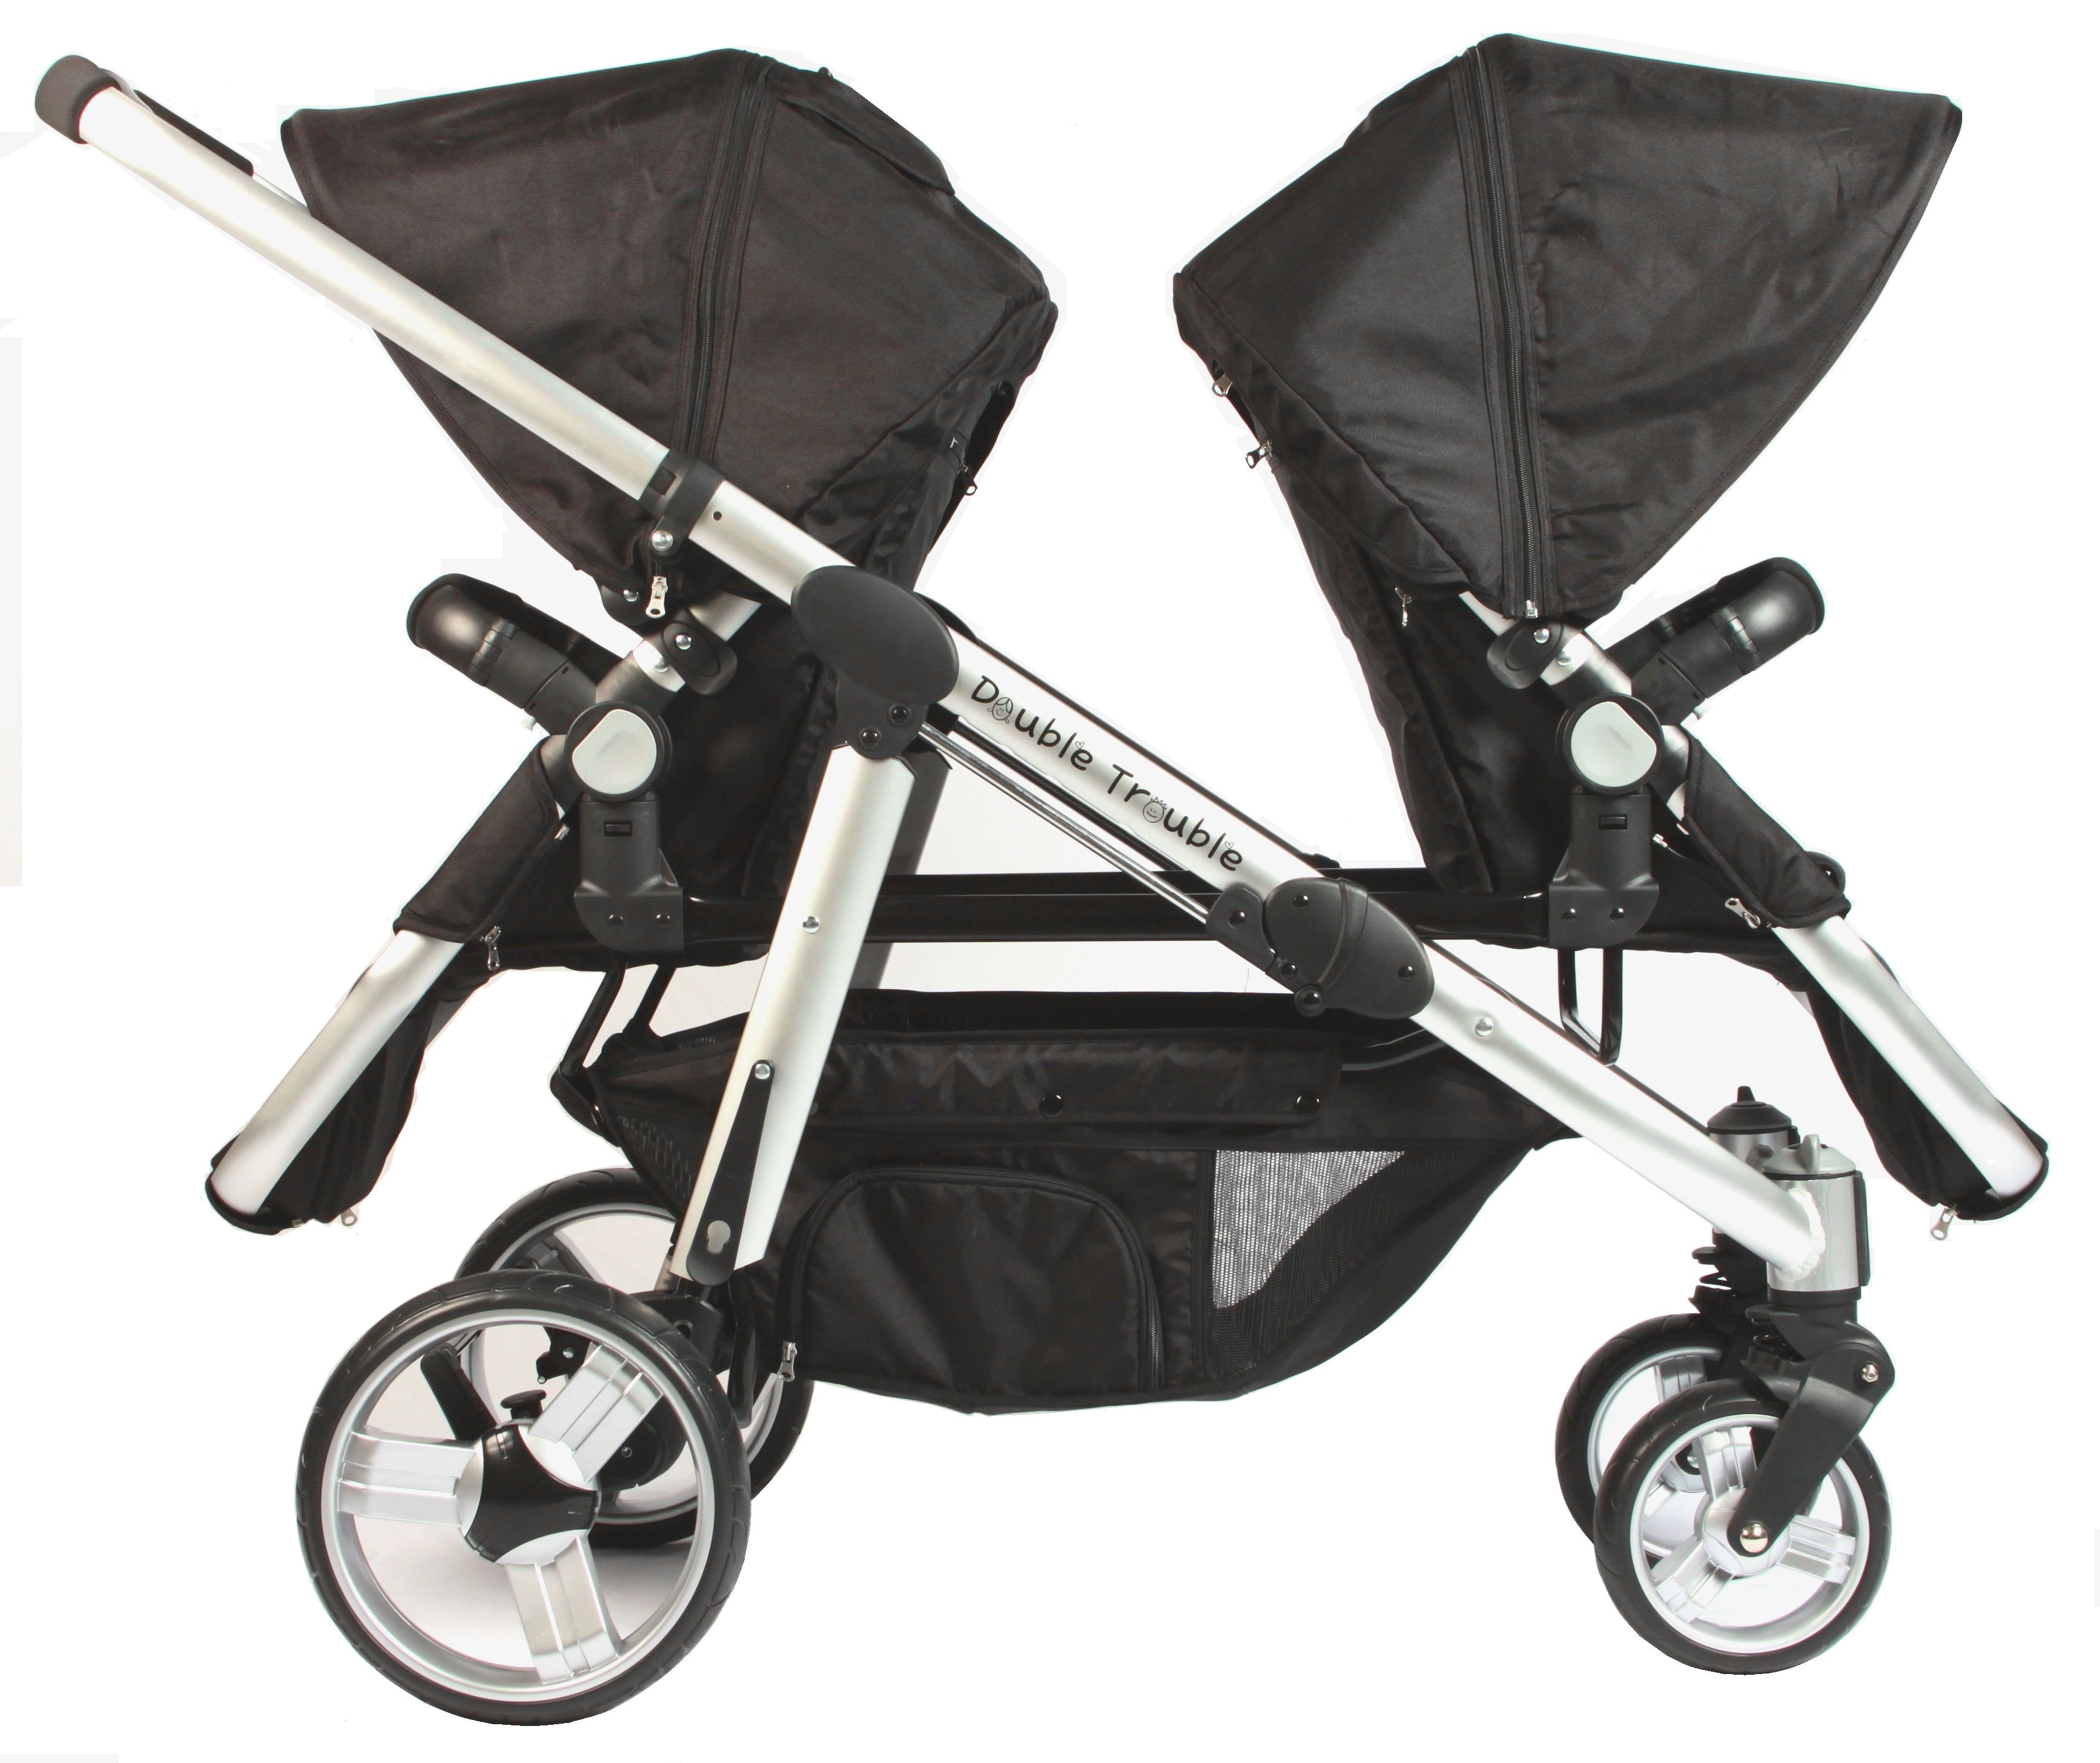 Twin Prams Travel Systems: Stroller Seats Back To Back